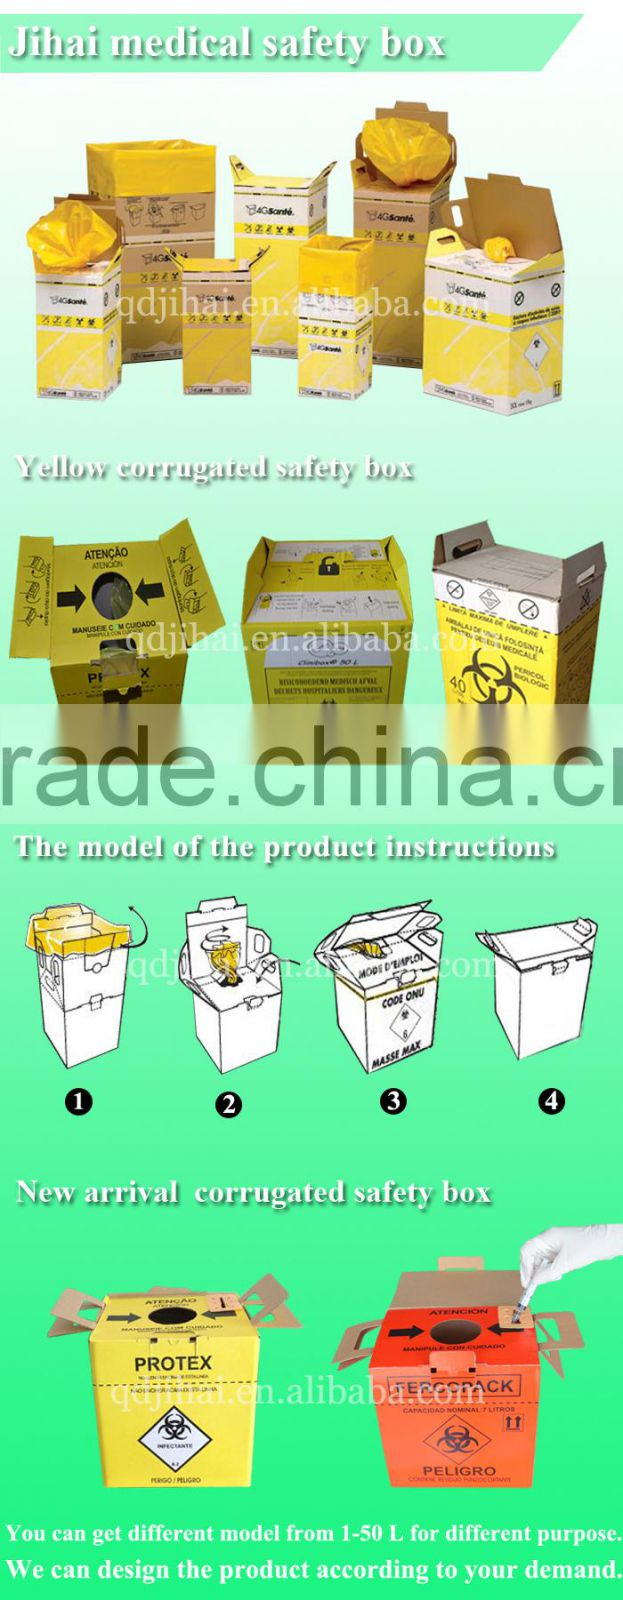 import export company names waste paper box for syringes and needles